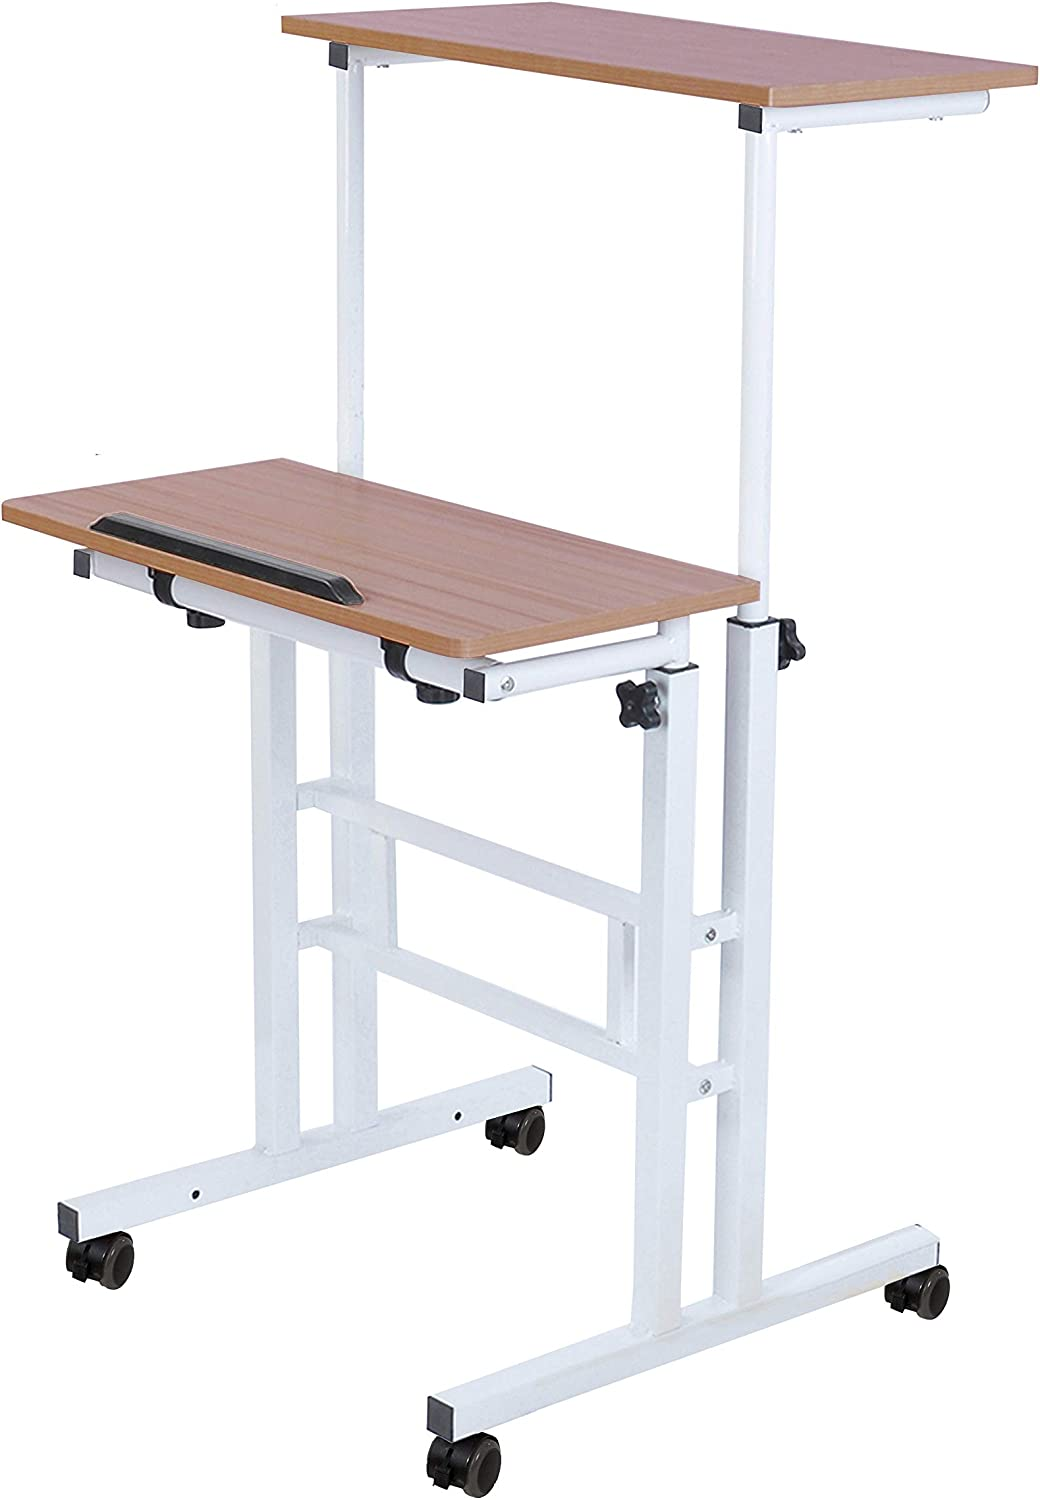 SDADI 2 Inches Carpet Wheels Desk Mobile Stand famous Up Standing Philadelphia Mall